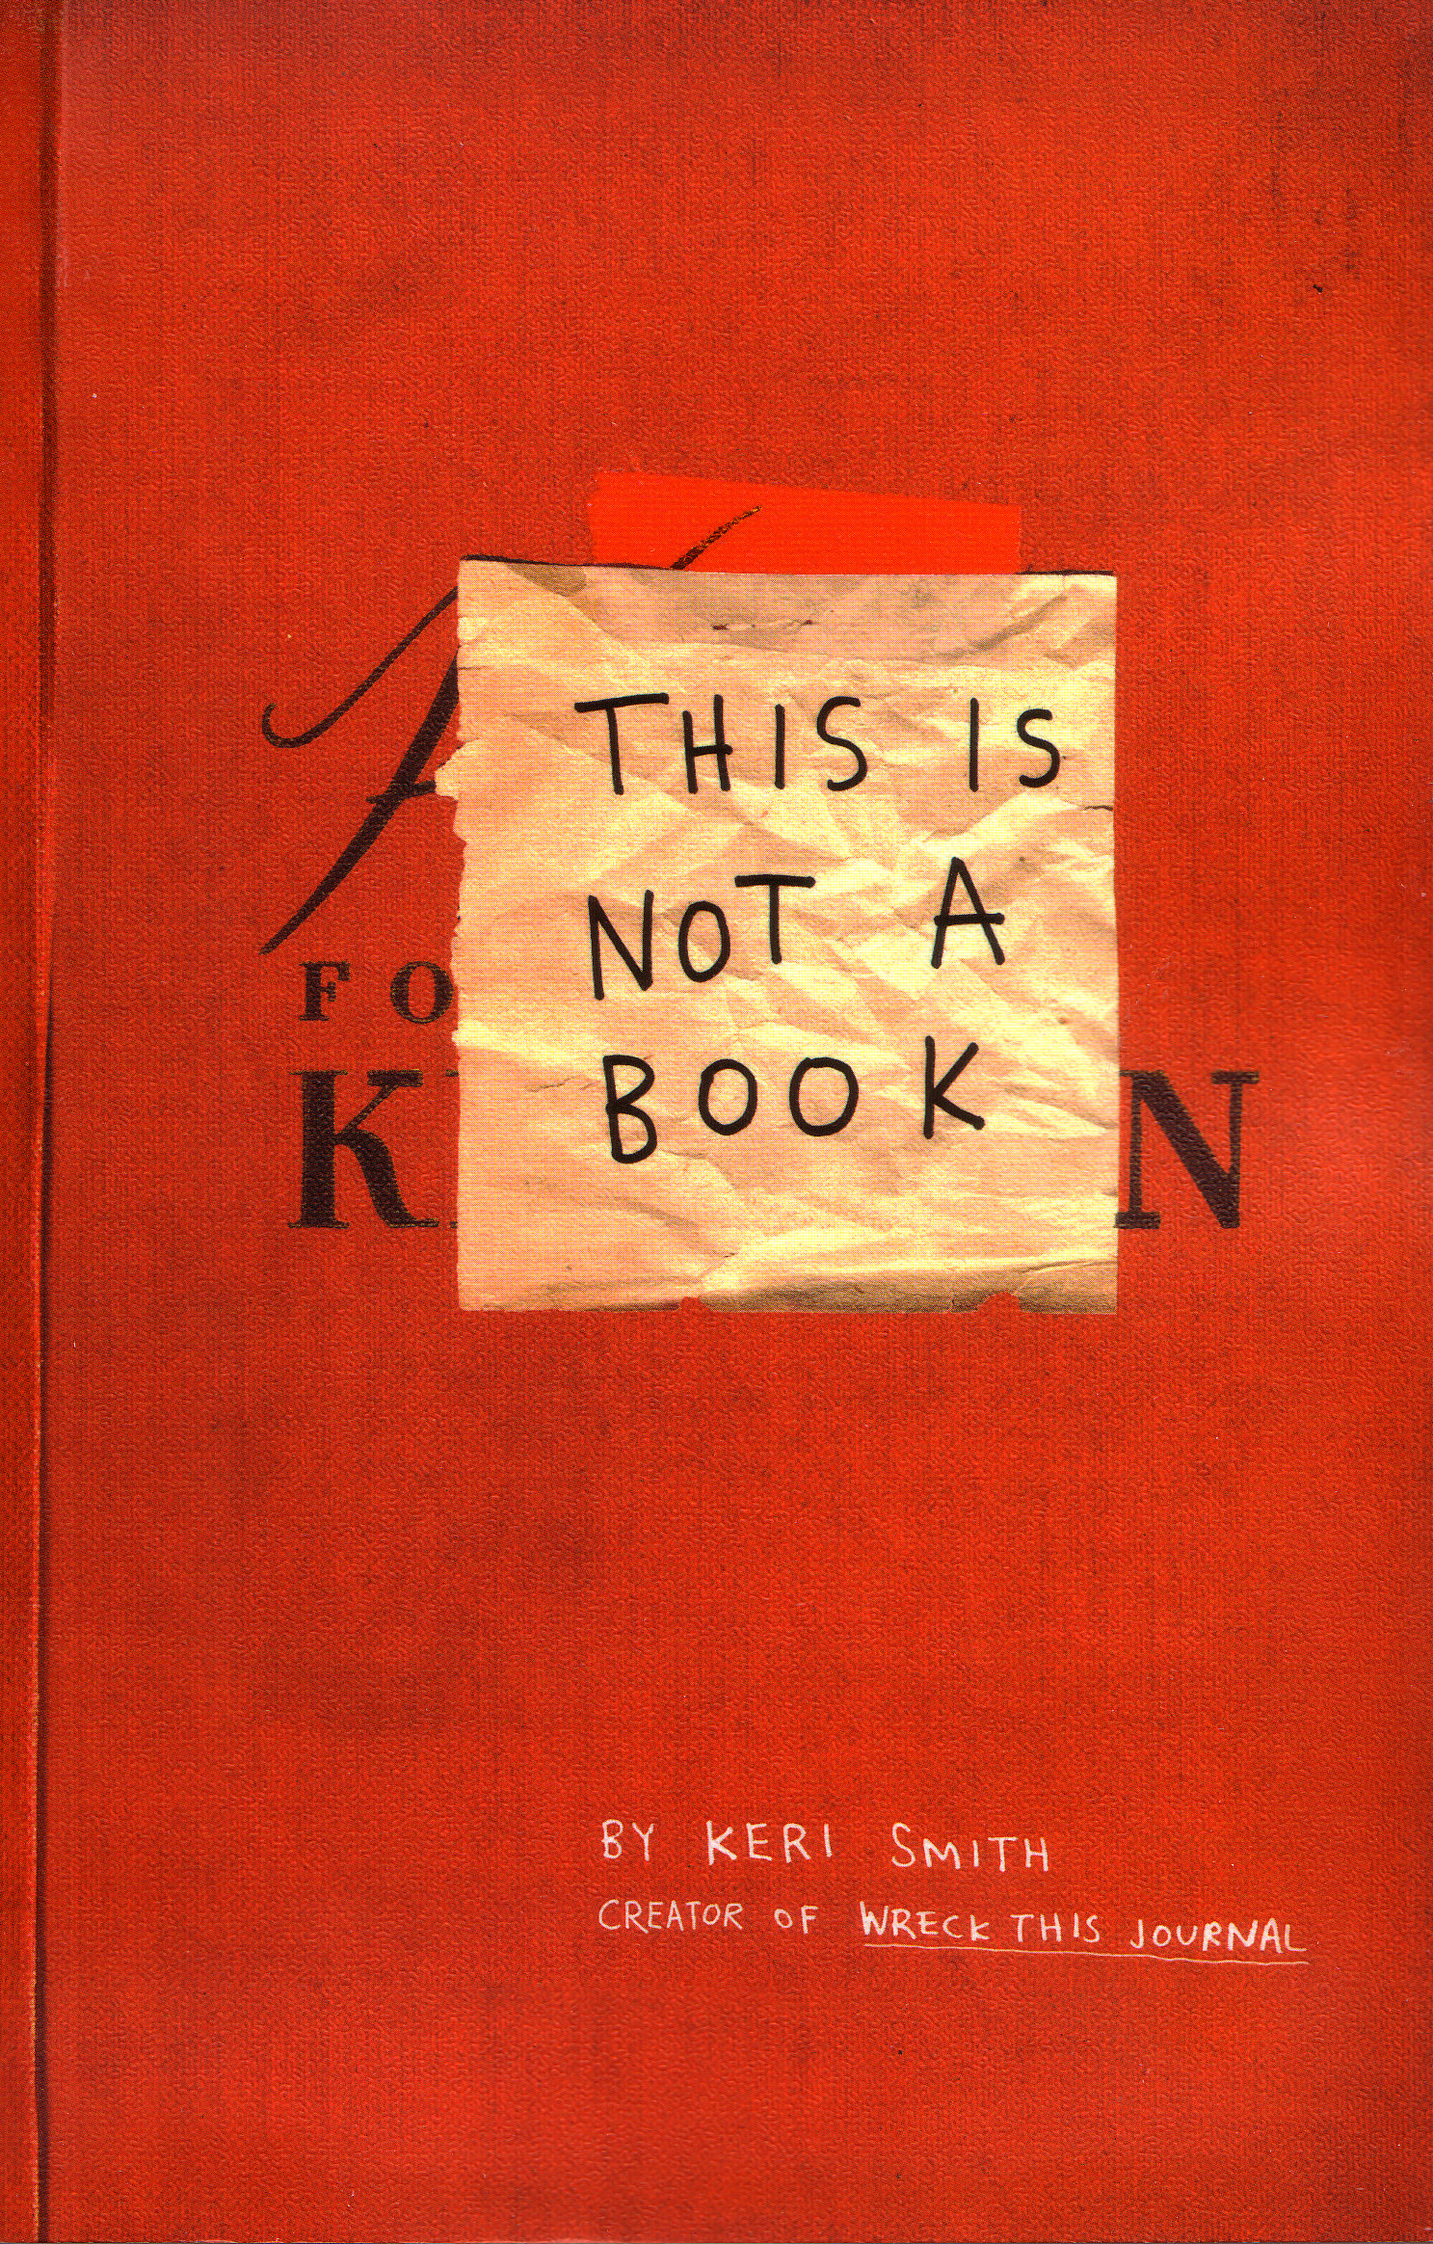 This is Not a Book by Keri Smith, ISBN: 9781846144448